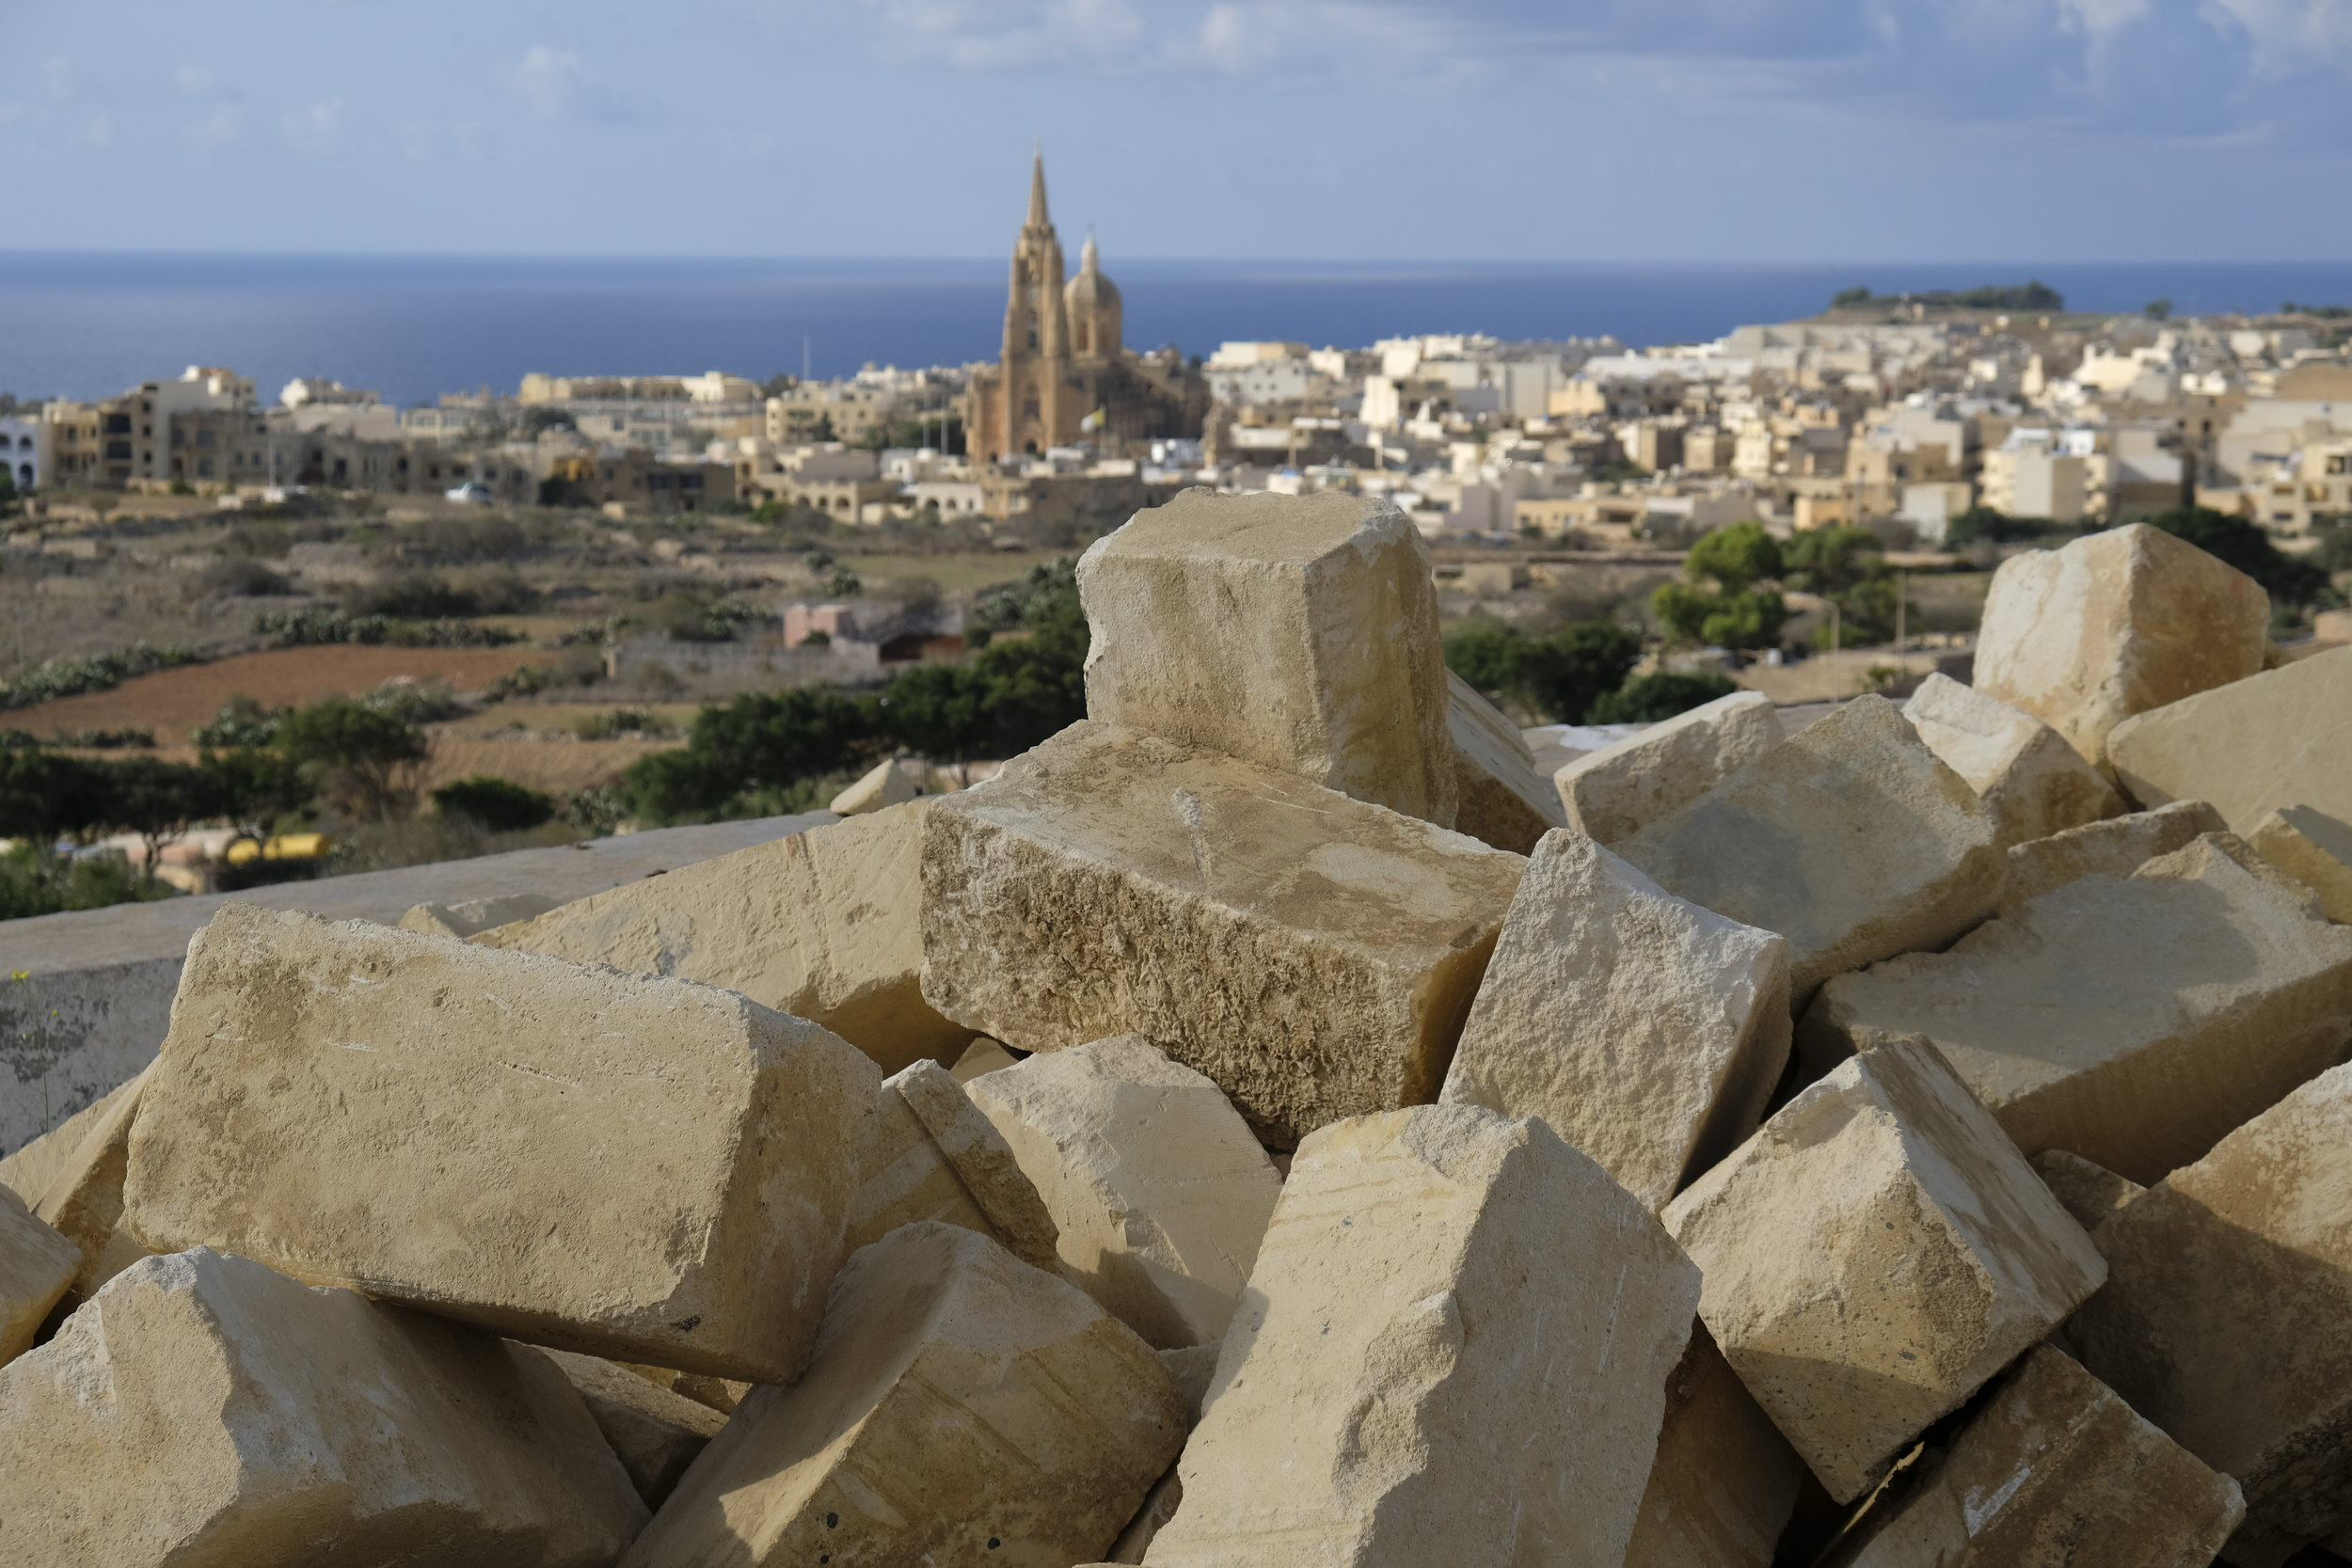 A view from the valley, with the sea to Malta in the background